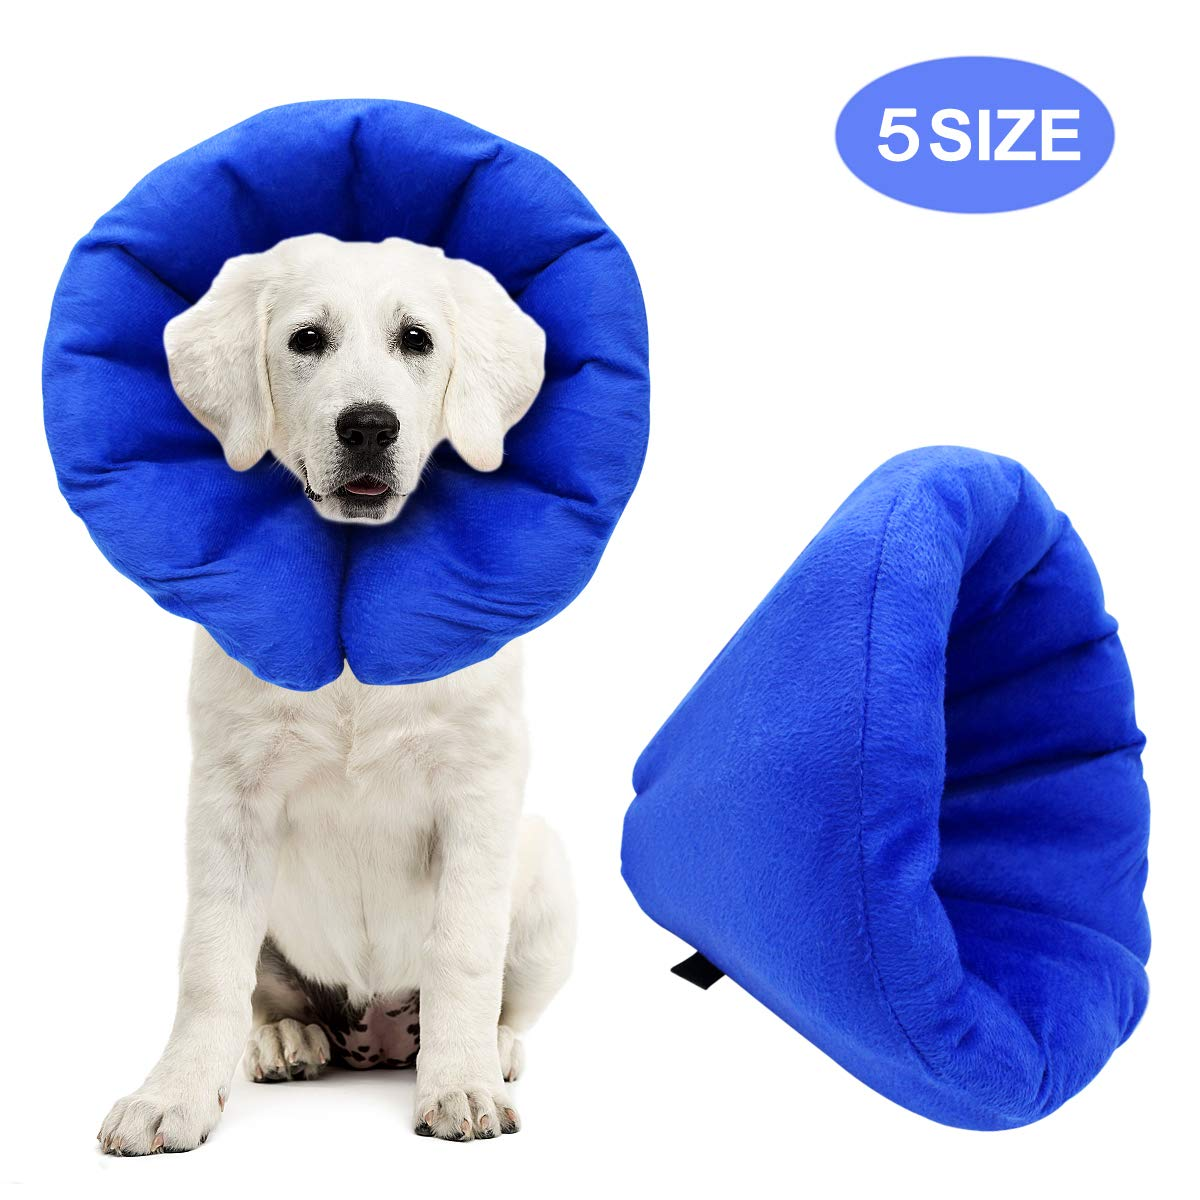 AK KYC Pet Inflatable Collar for Dogs Cone After Surgery Adjustable Puppy Recovery Protective Collar for Small Medium Dogs, 3XL Size 17.3-19.6 inch by AK KYC